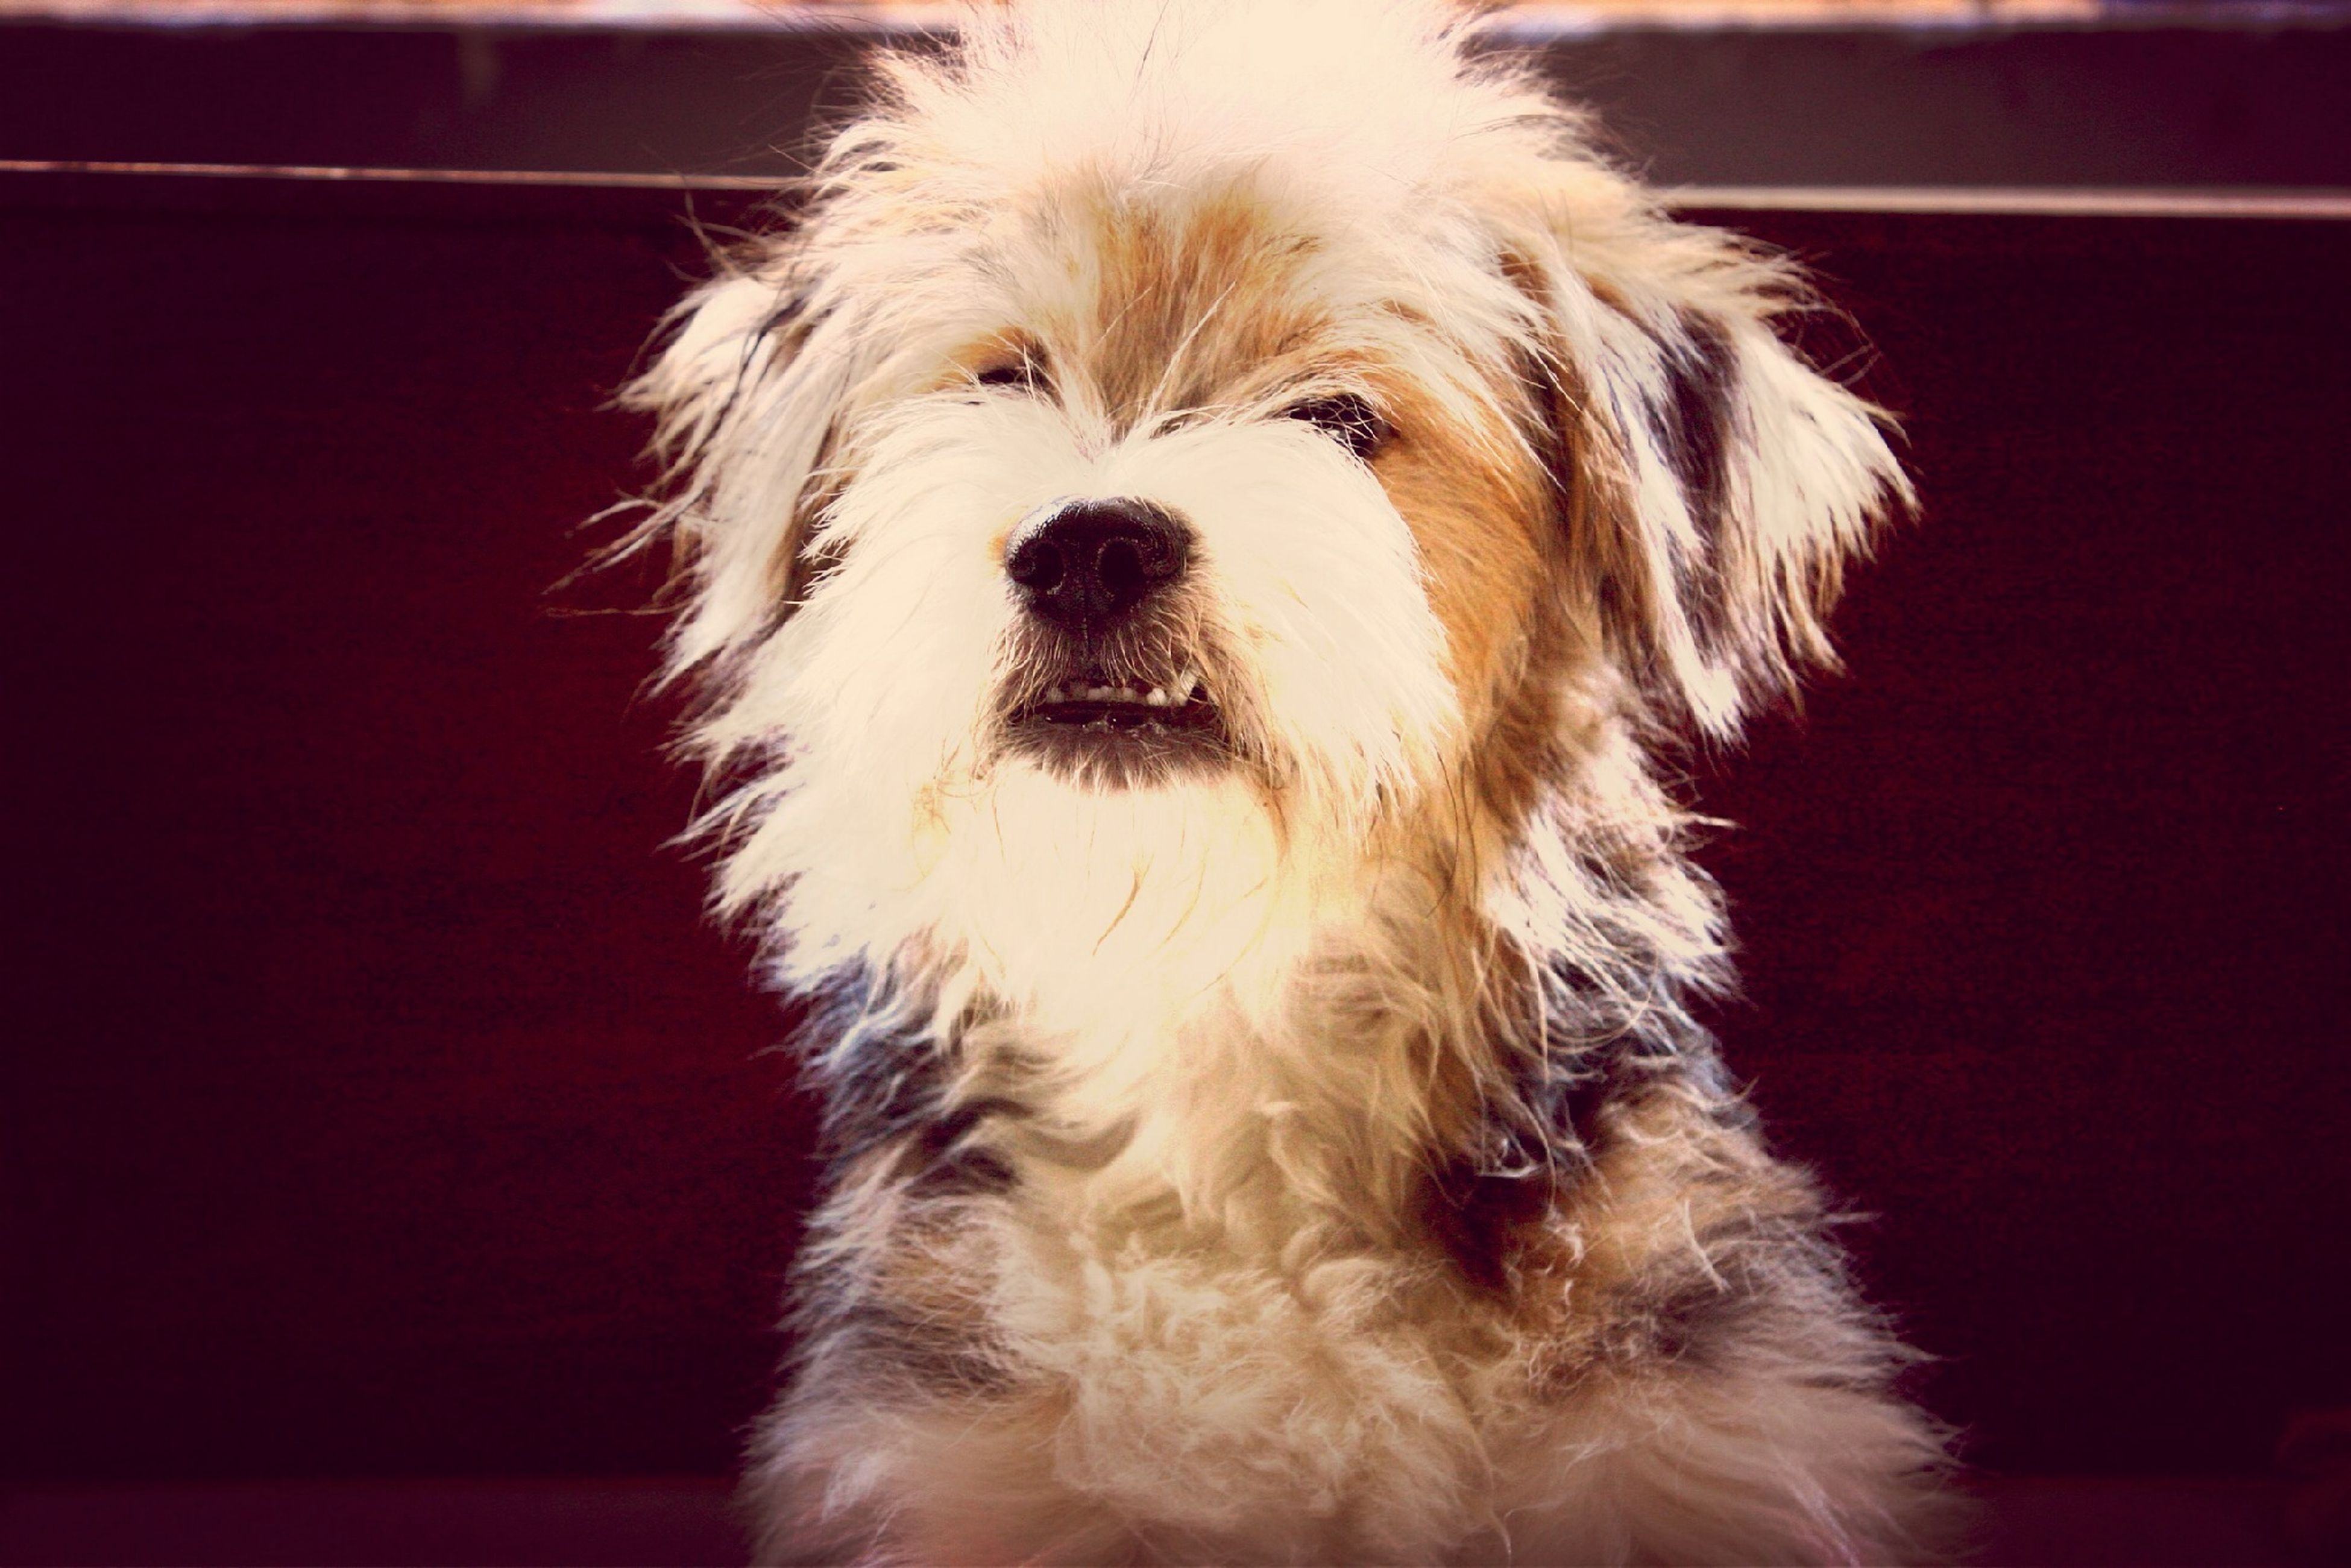 pets, dog, domestic animals, one animal, animal themes, mammal, indoors, close-up, animal head, portrait, animal hair, looking at camera, home interior, front view, focus on foreground, no people, cute, loyalty, home